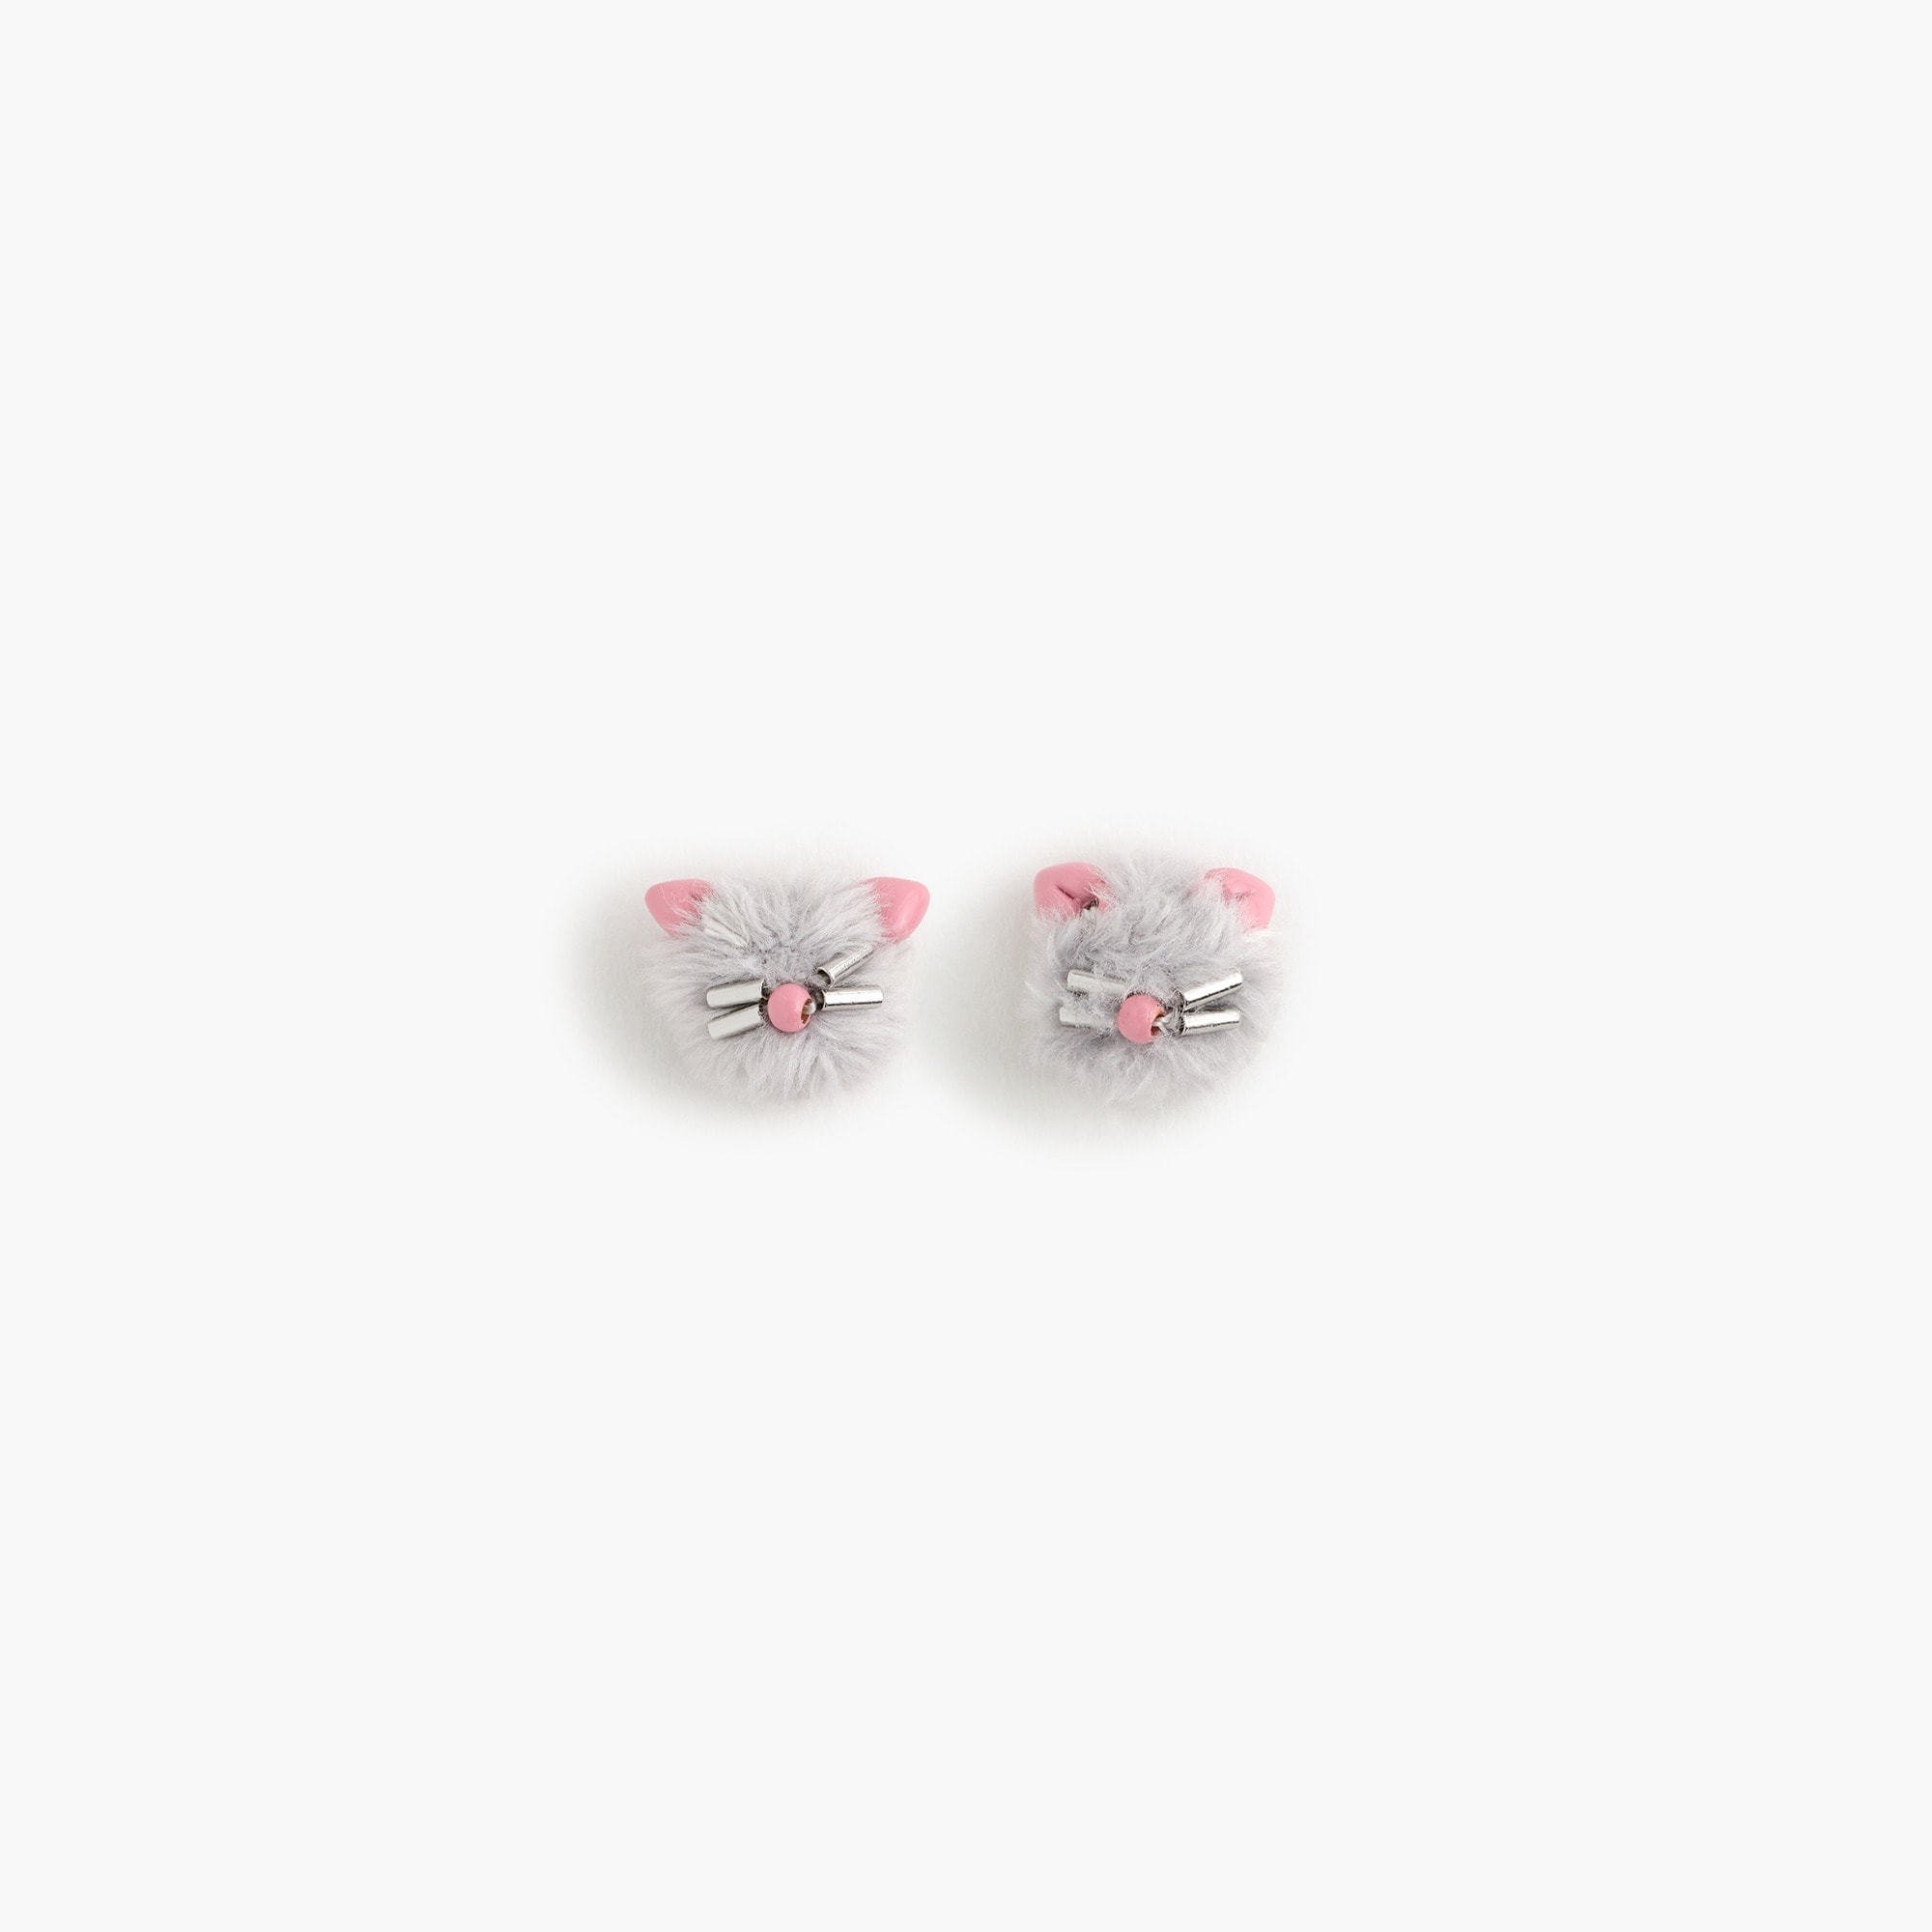 girls Girls' kitty stud earrings